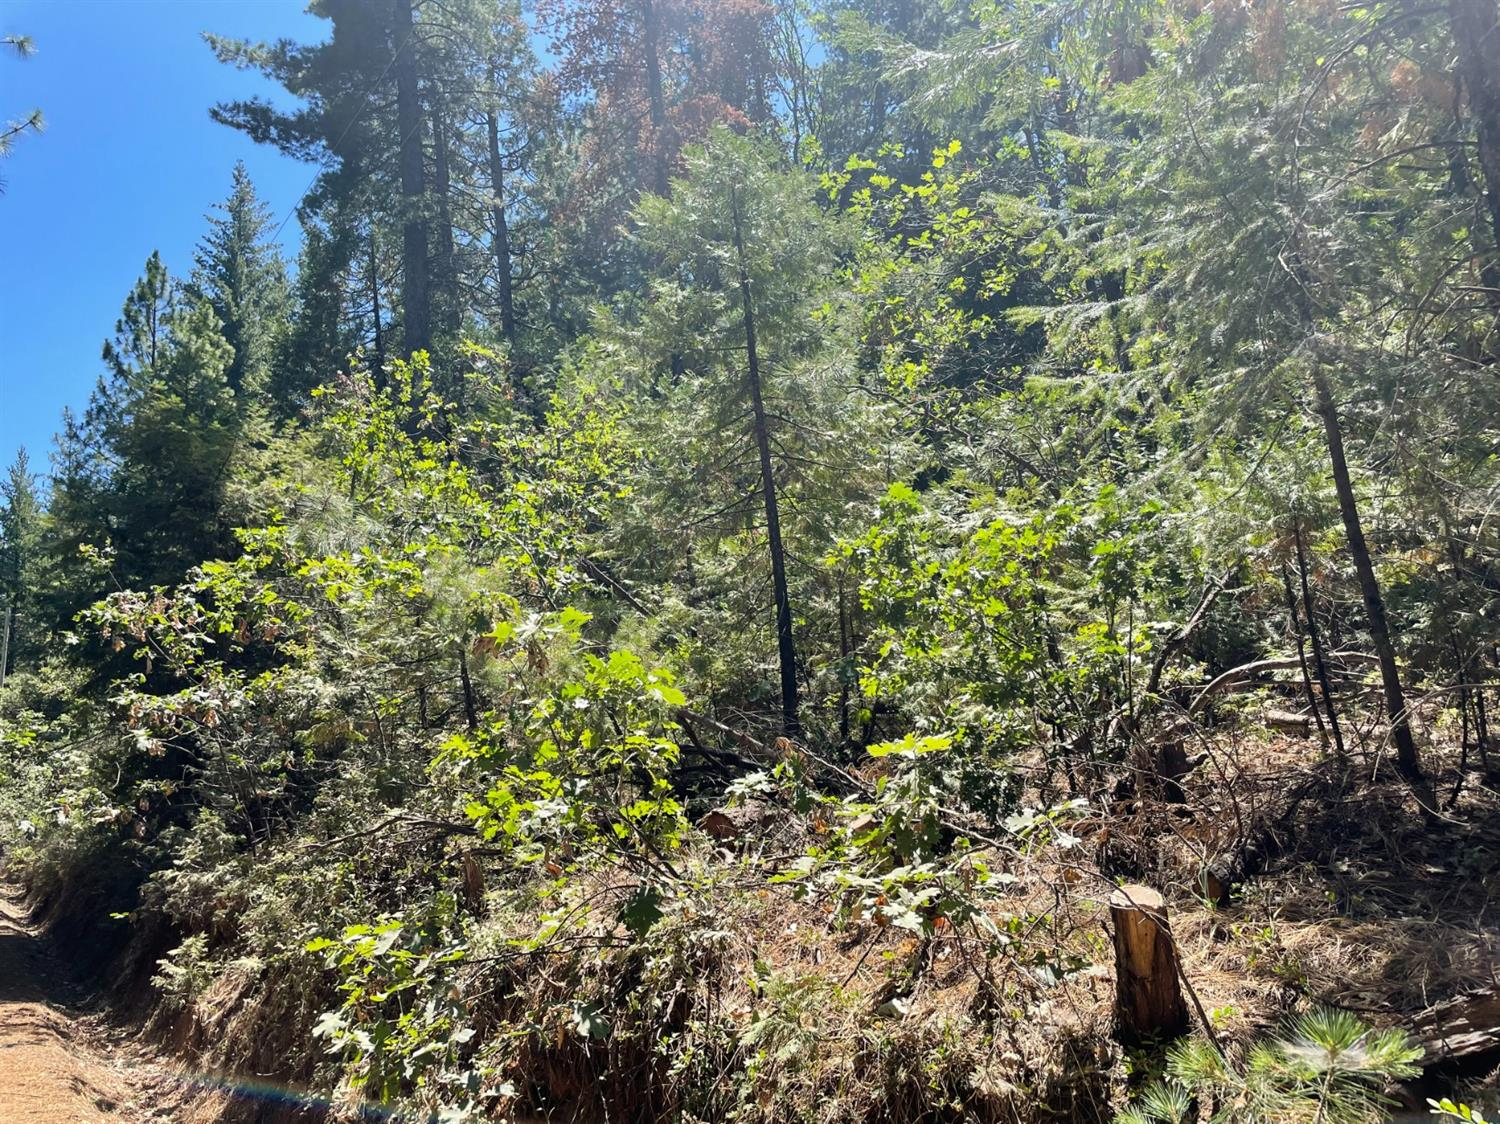 10 acres, clean slate, Backs up to El Dorado National Forest. ATV, hunting, horse back riding, hiking heaven. Quiet place to build a homestead amongst the pines and oaks.